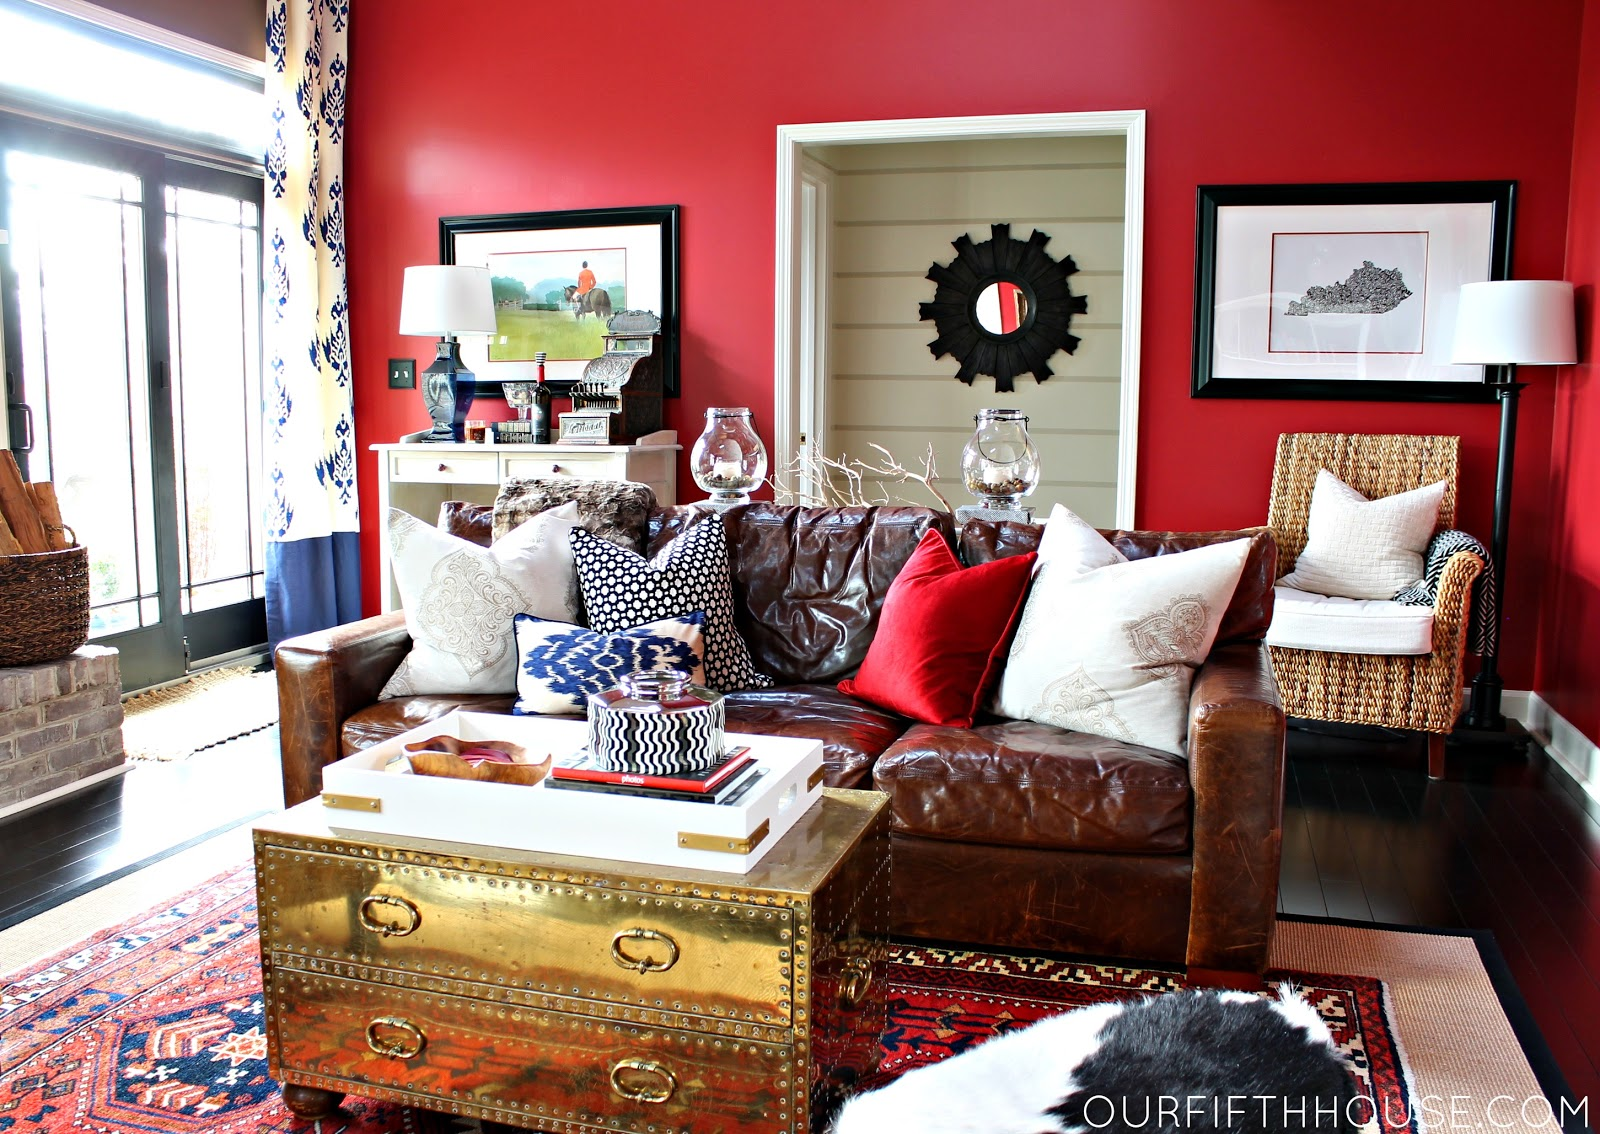 Design Thoughts: Why Not A Bold Wall Color? | Our Fifth House